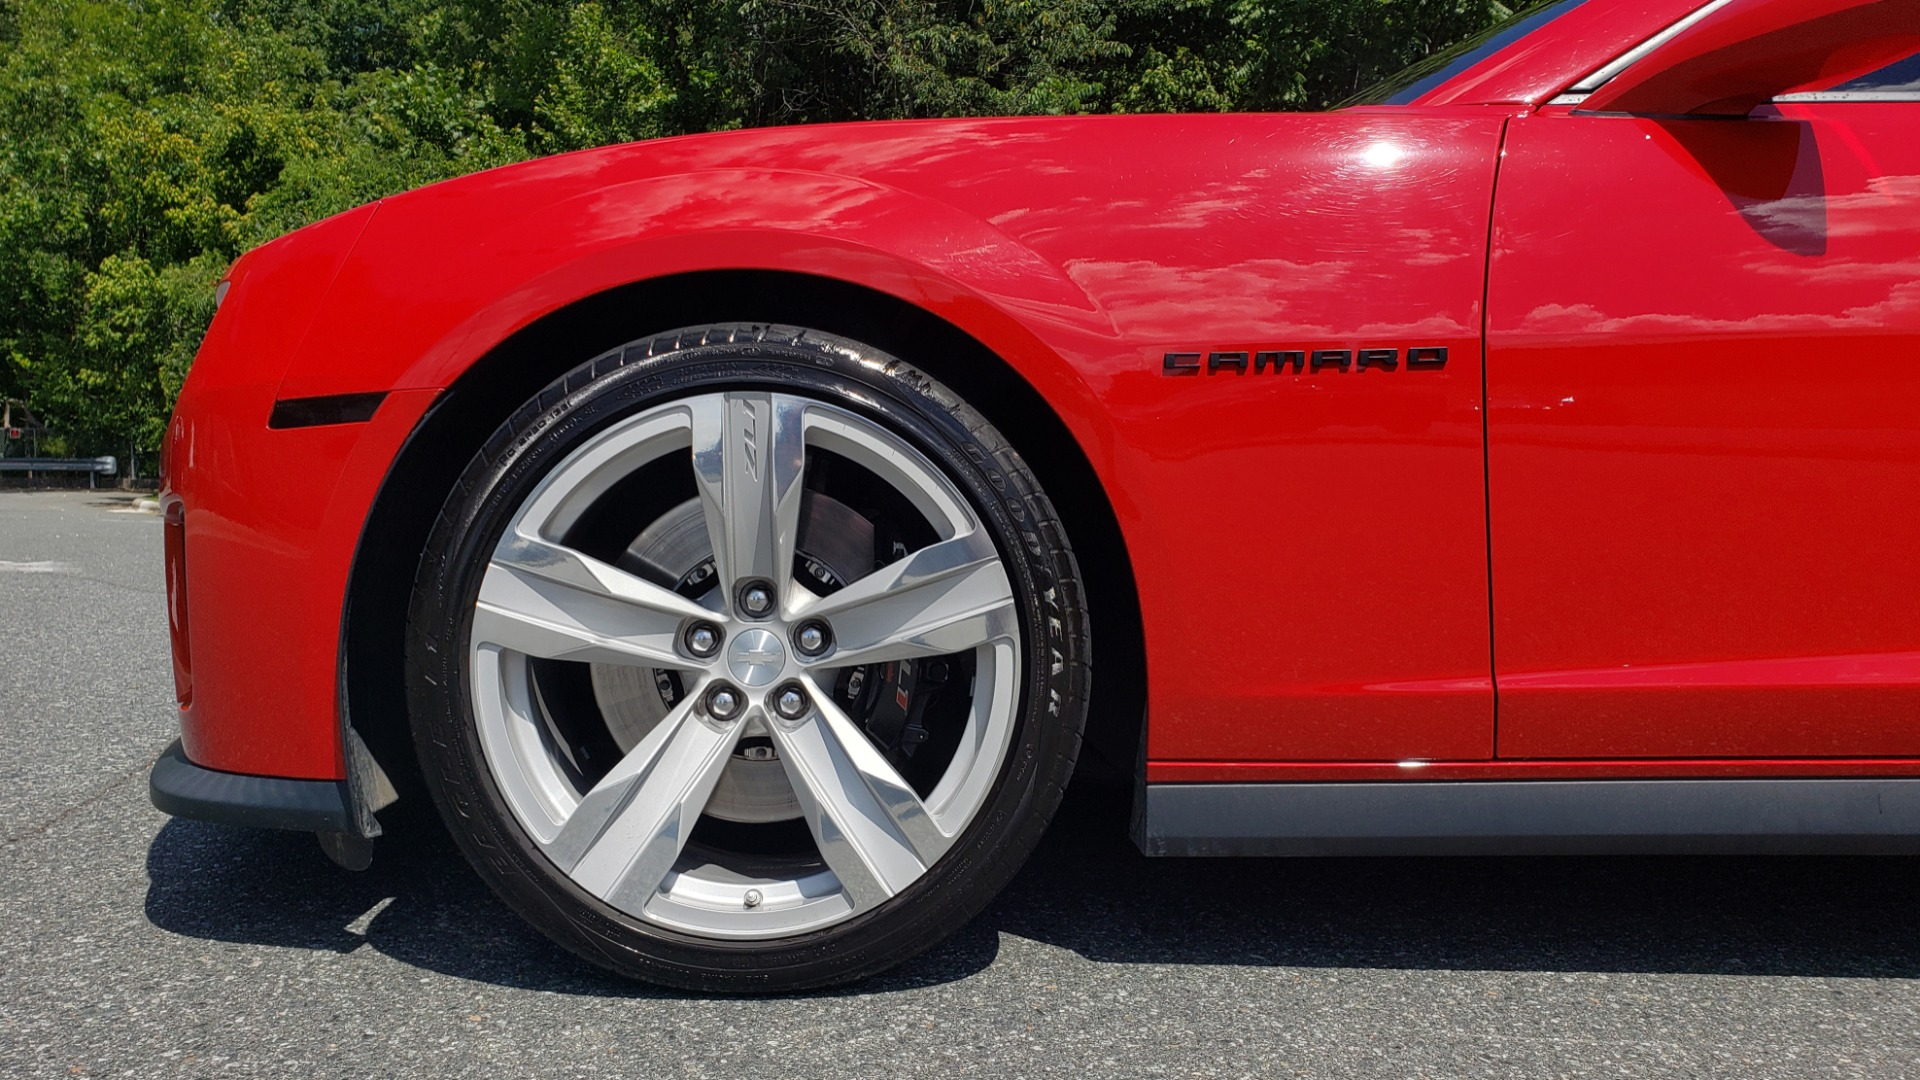 Used 2013 Chevrolet CAMARO ZL1 / 6.2L SUPERCHARGED 580HP / 6-SPD AUTO / NAV / REARVIEW for sale Sold at Formula Imports in Charlotte NC 28227 85